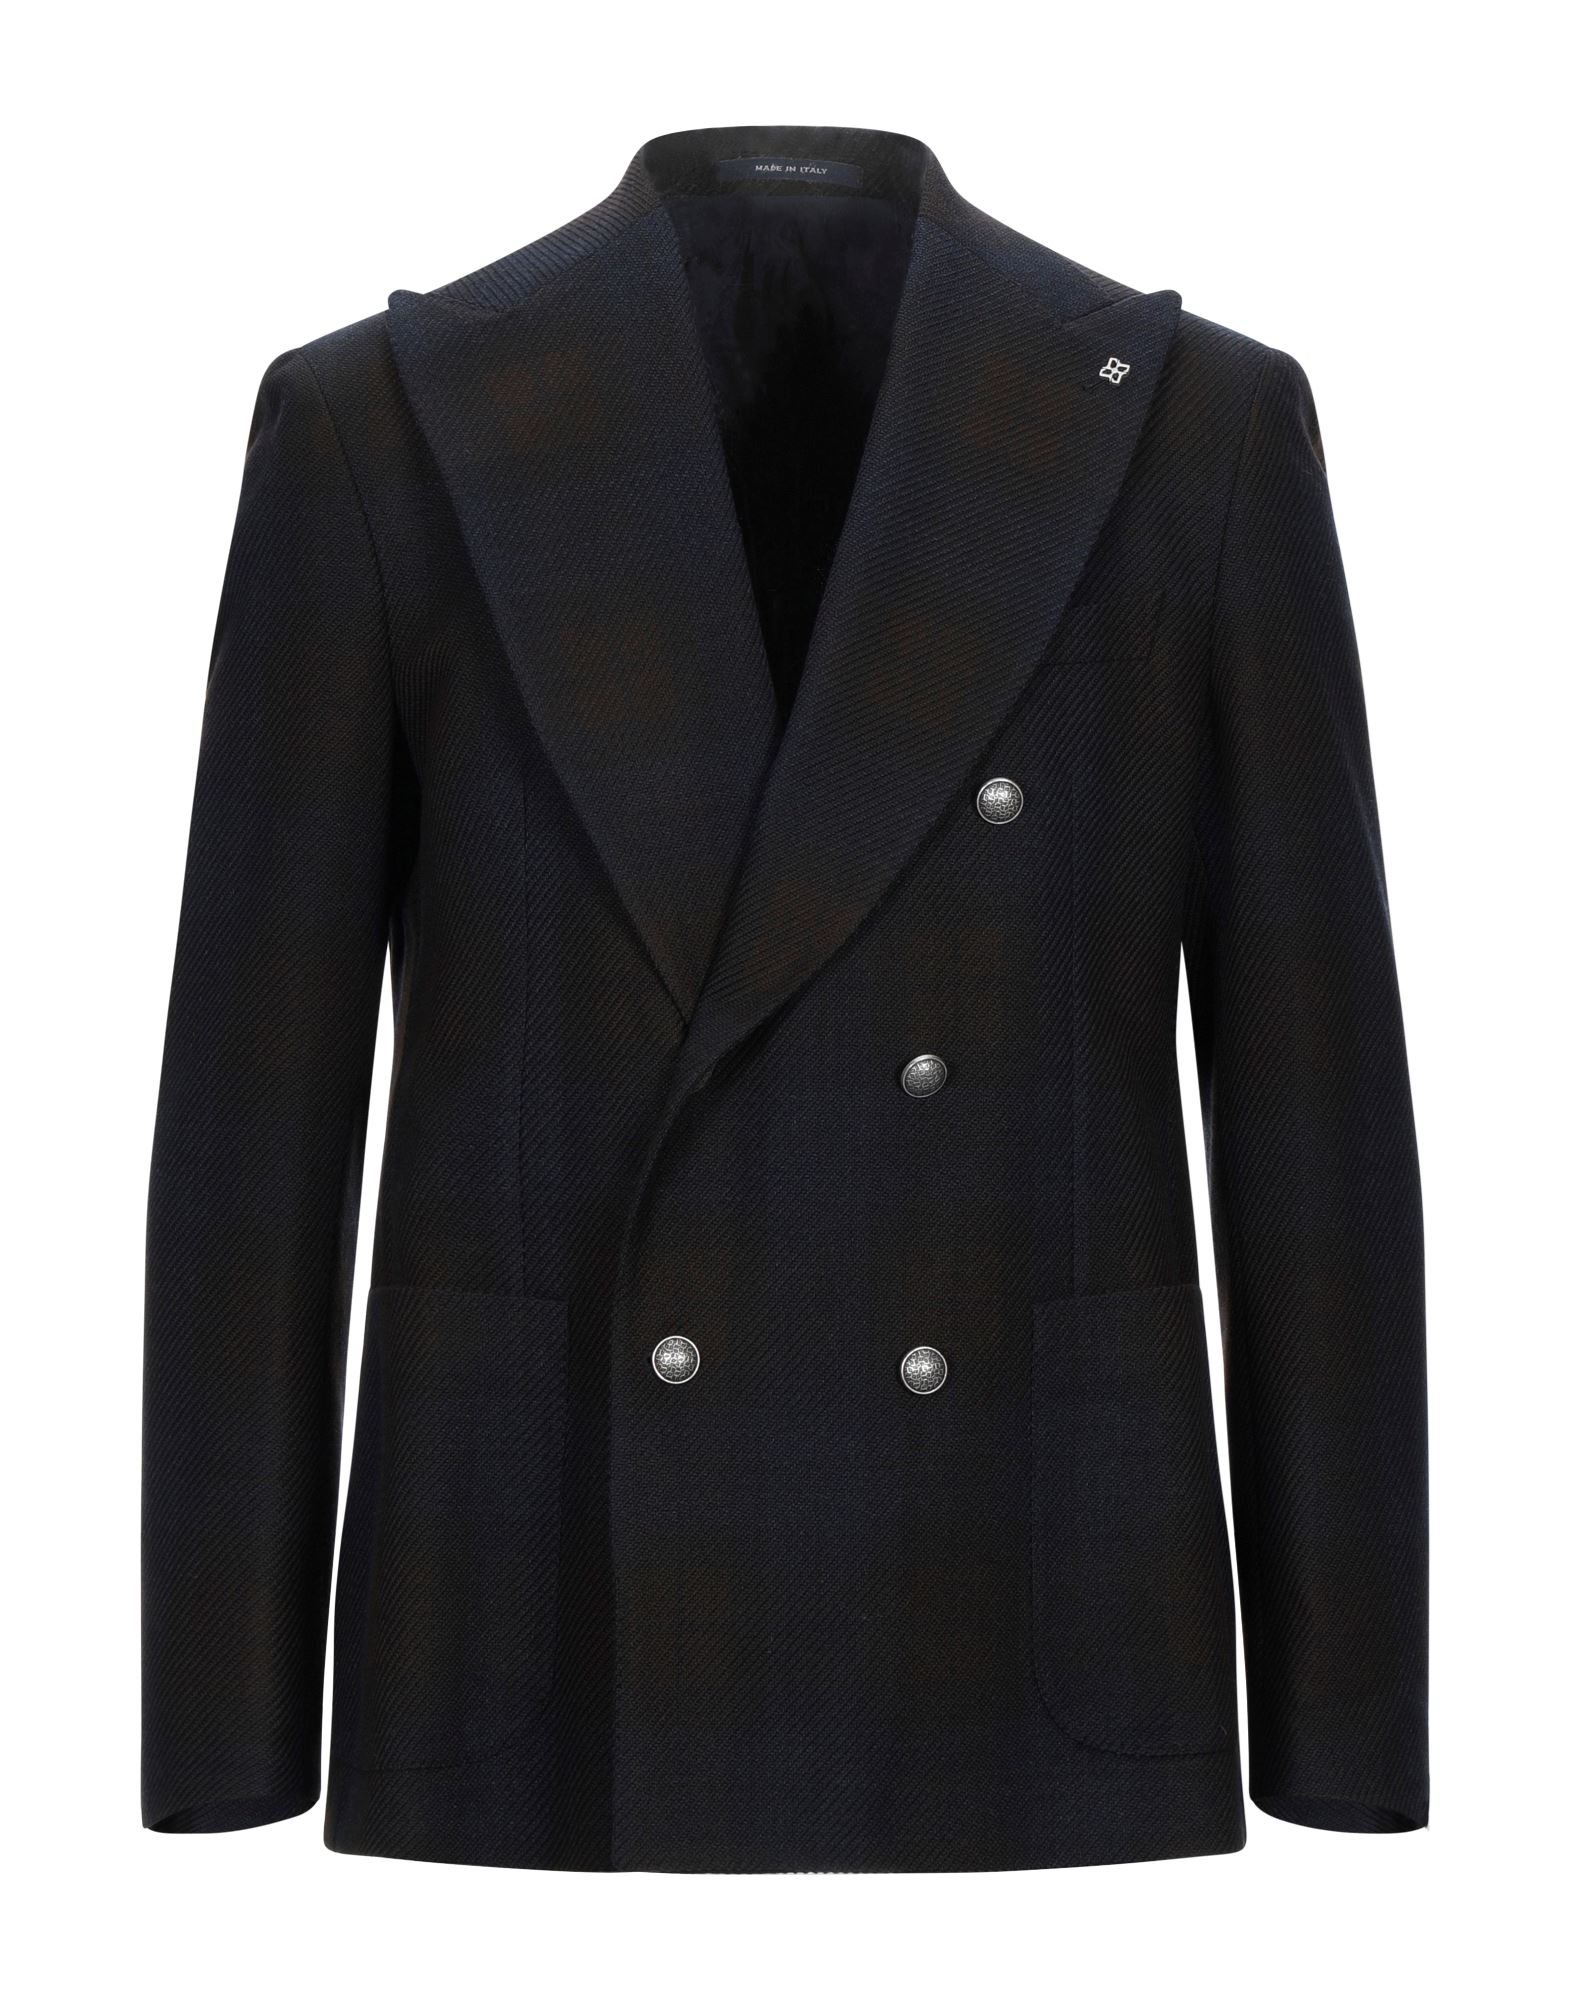 TAGLIATORE Suit jackets. flannel, detachable application, tartan plaid, lapel collar, long sleeves, double-breasted, multipockets, button closing, single chest pocket, two inside pockets, semi-lined, dual back vents. 61% Virgin Wool, 39% Cotton